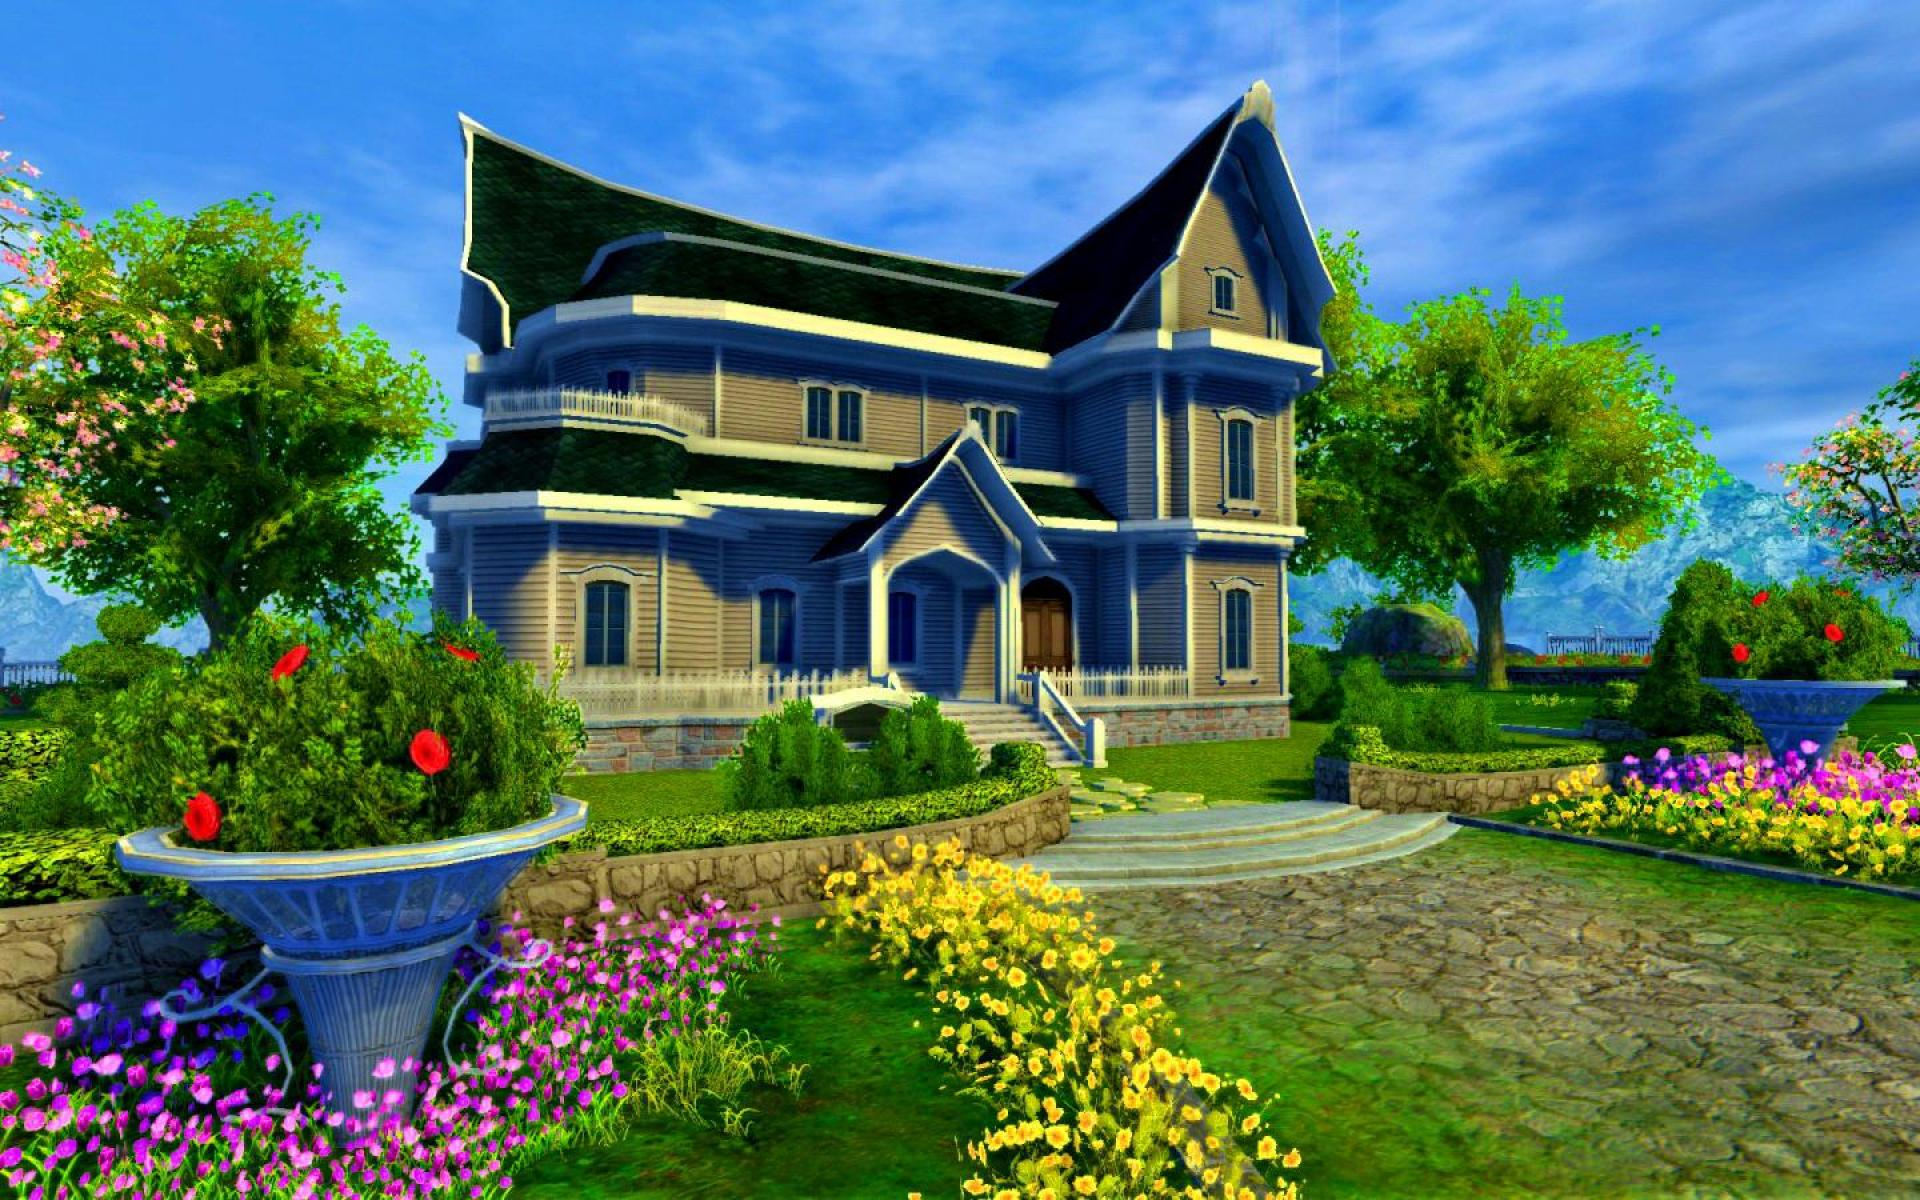 Dream home wallpaper wallpapersafari for Home wallpaper videos